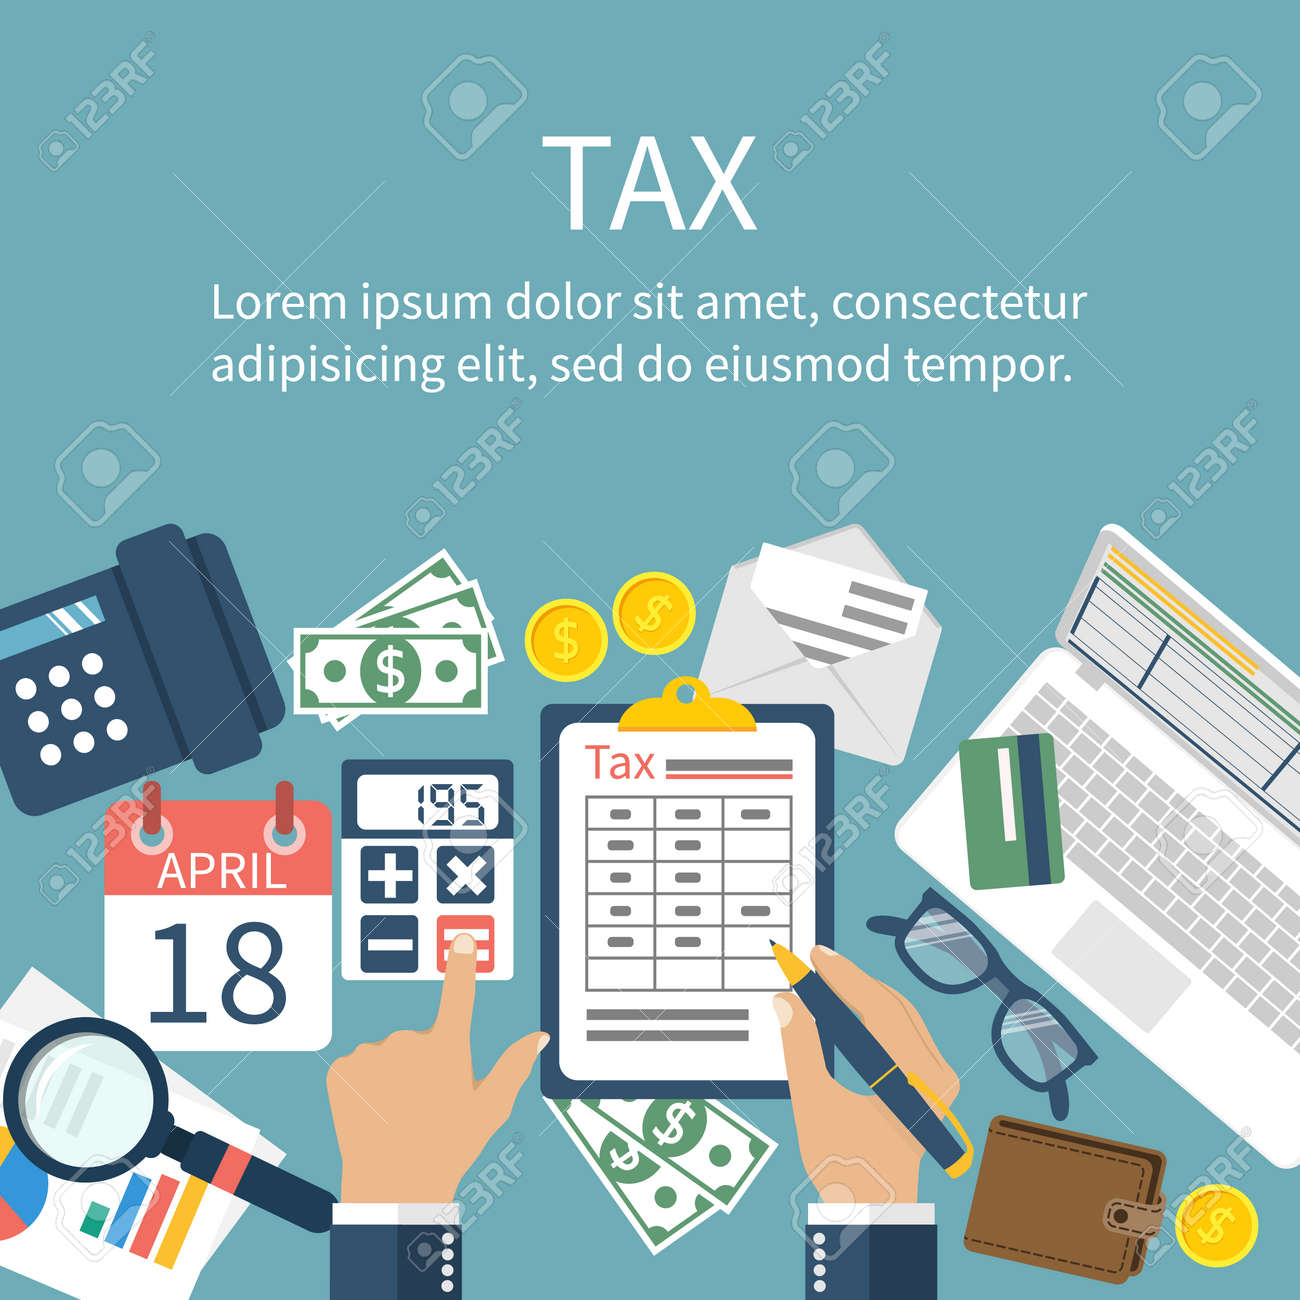 Tax payment. Government taxes. State taxes. Data analysis, paperwork, financial research, report. Businessman calculation tax. Calculation of tax return. Flat design. Tax form vector. Payment of debt. - 54109122